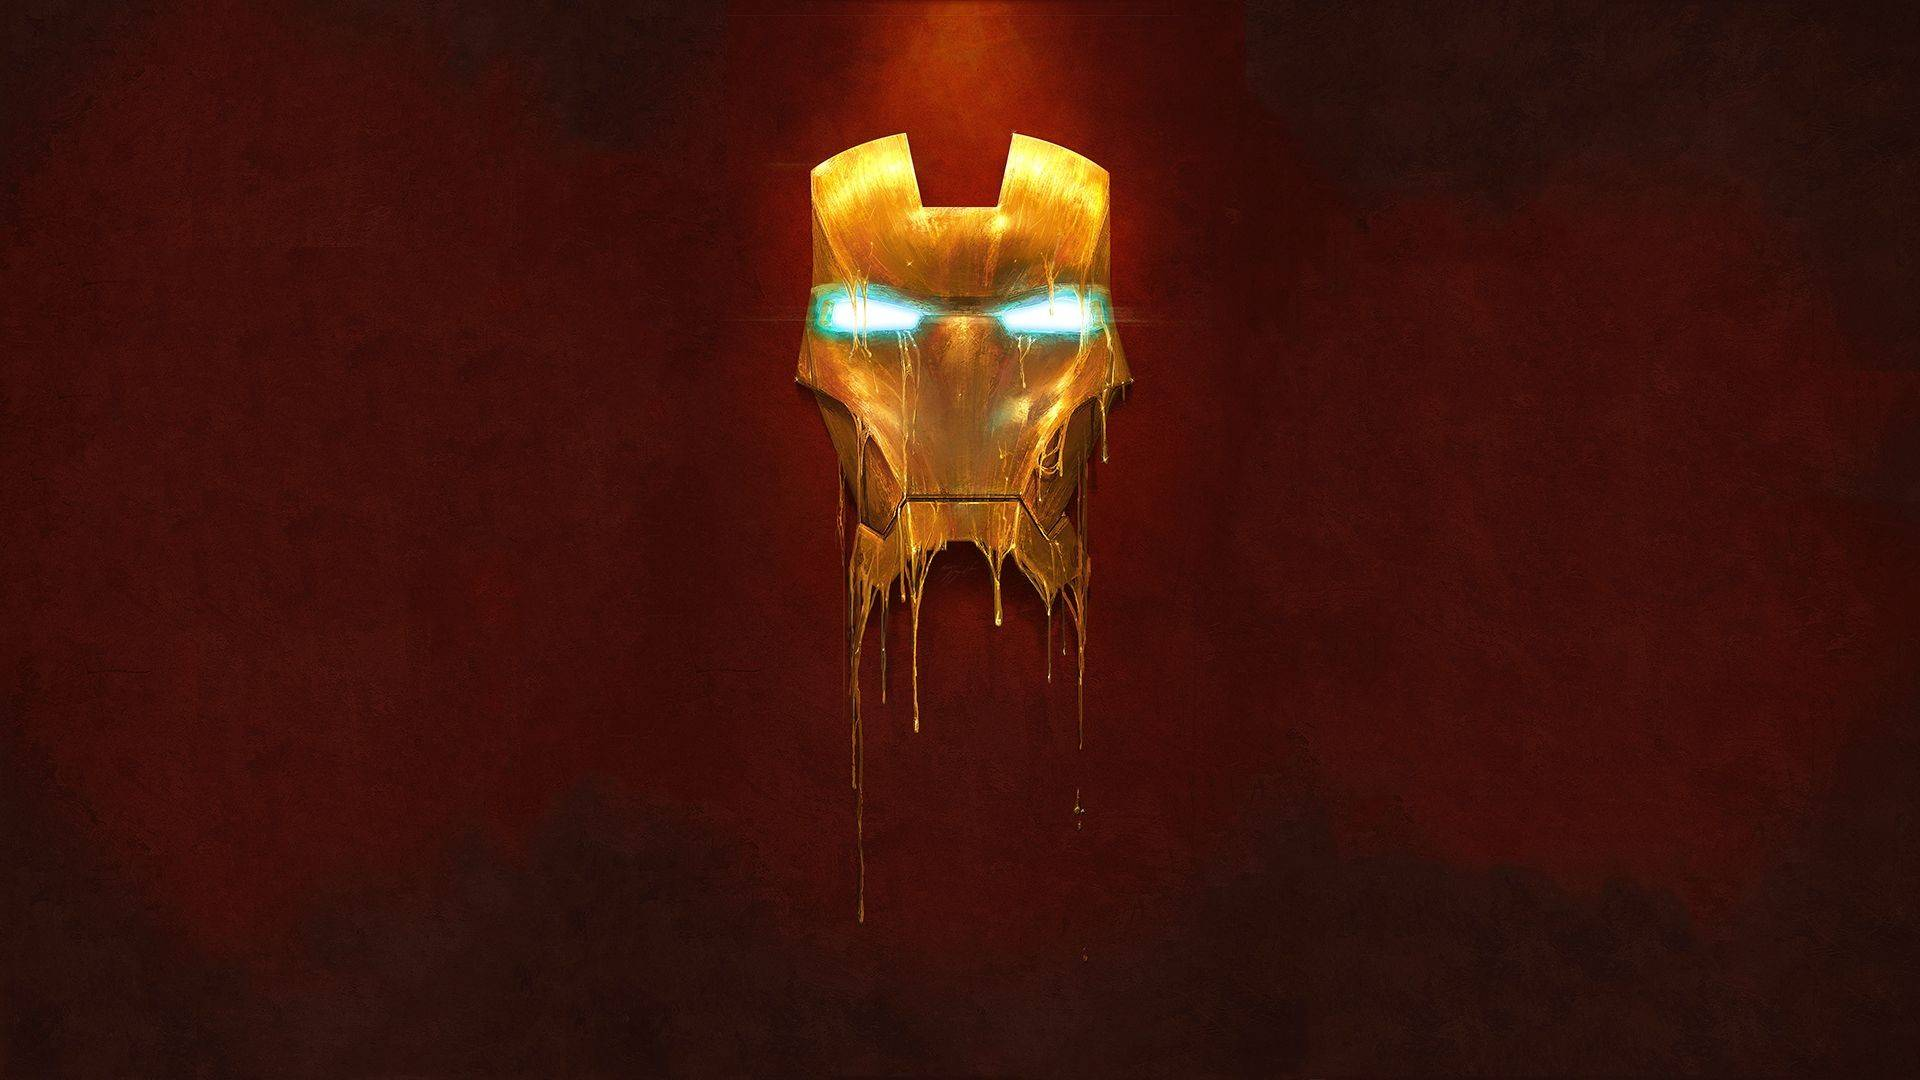 iron man 3 mask wallpaper hd hd wallpaper collection hd